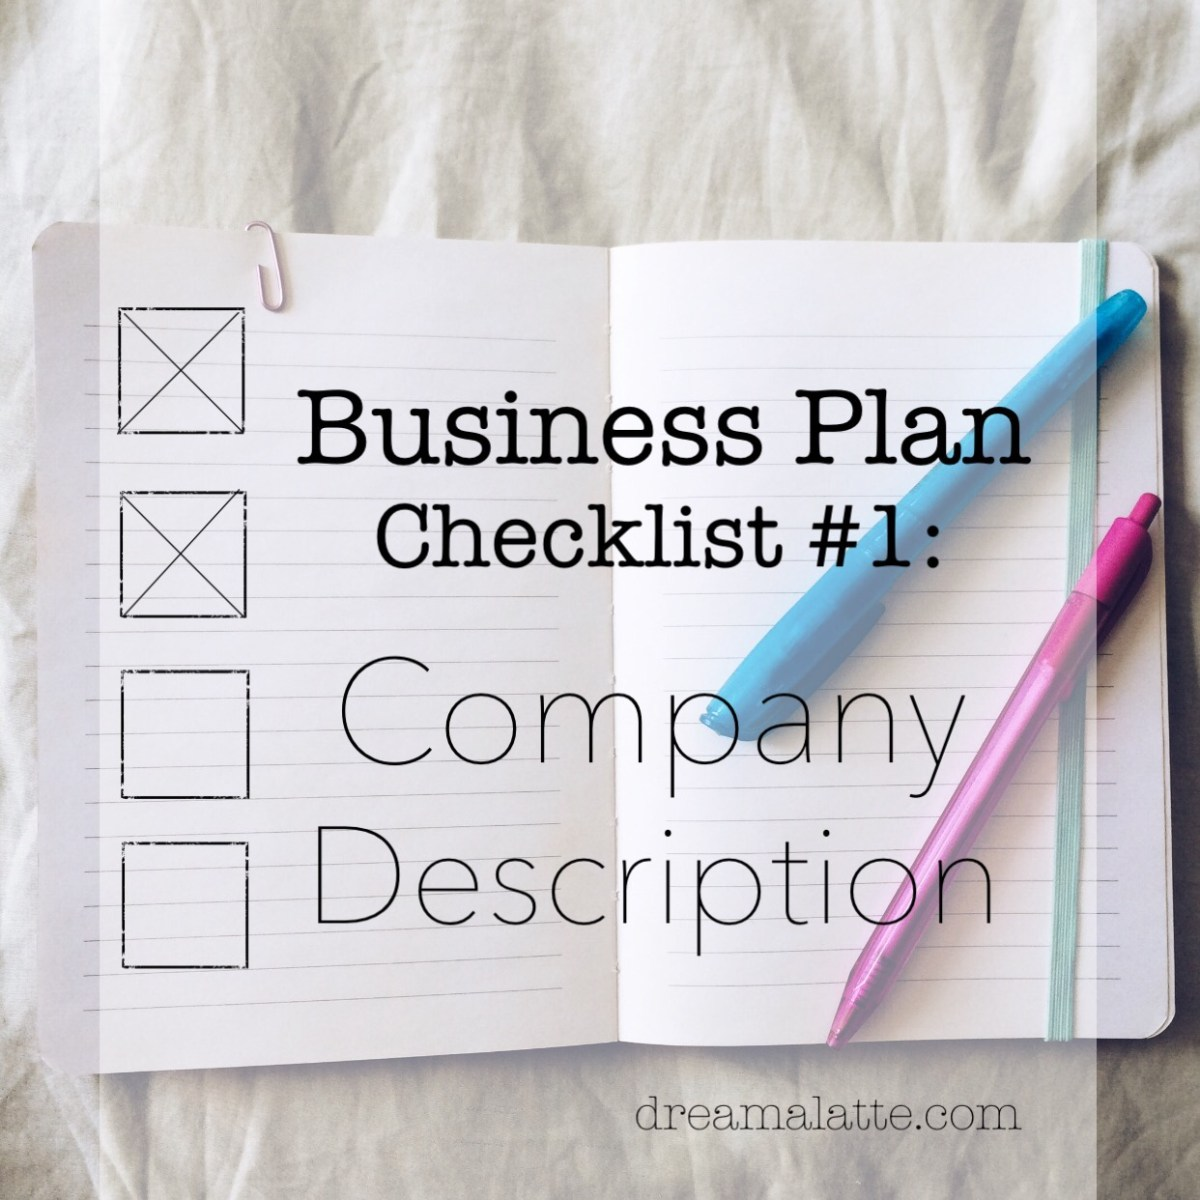 Coffee Shop Business Plan: Company Description